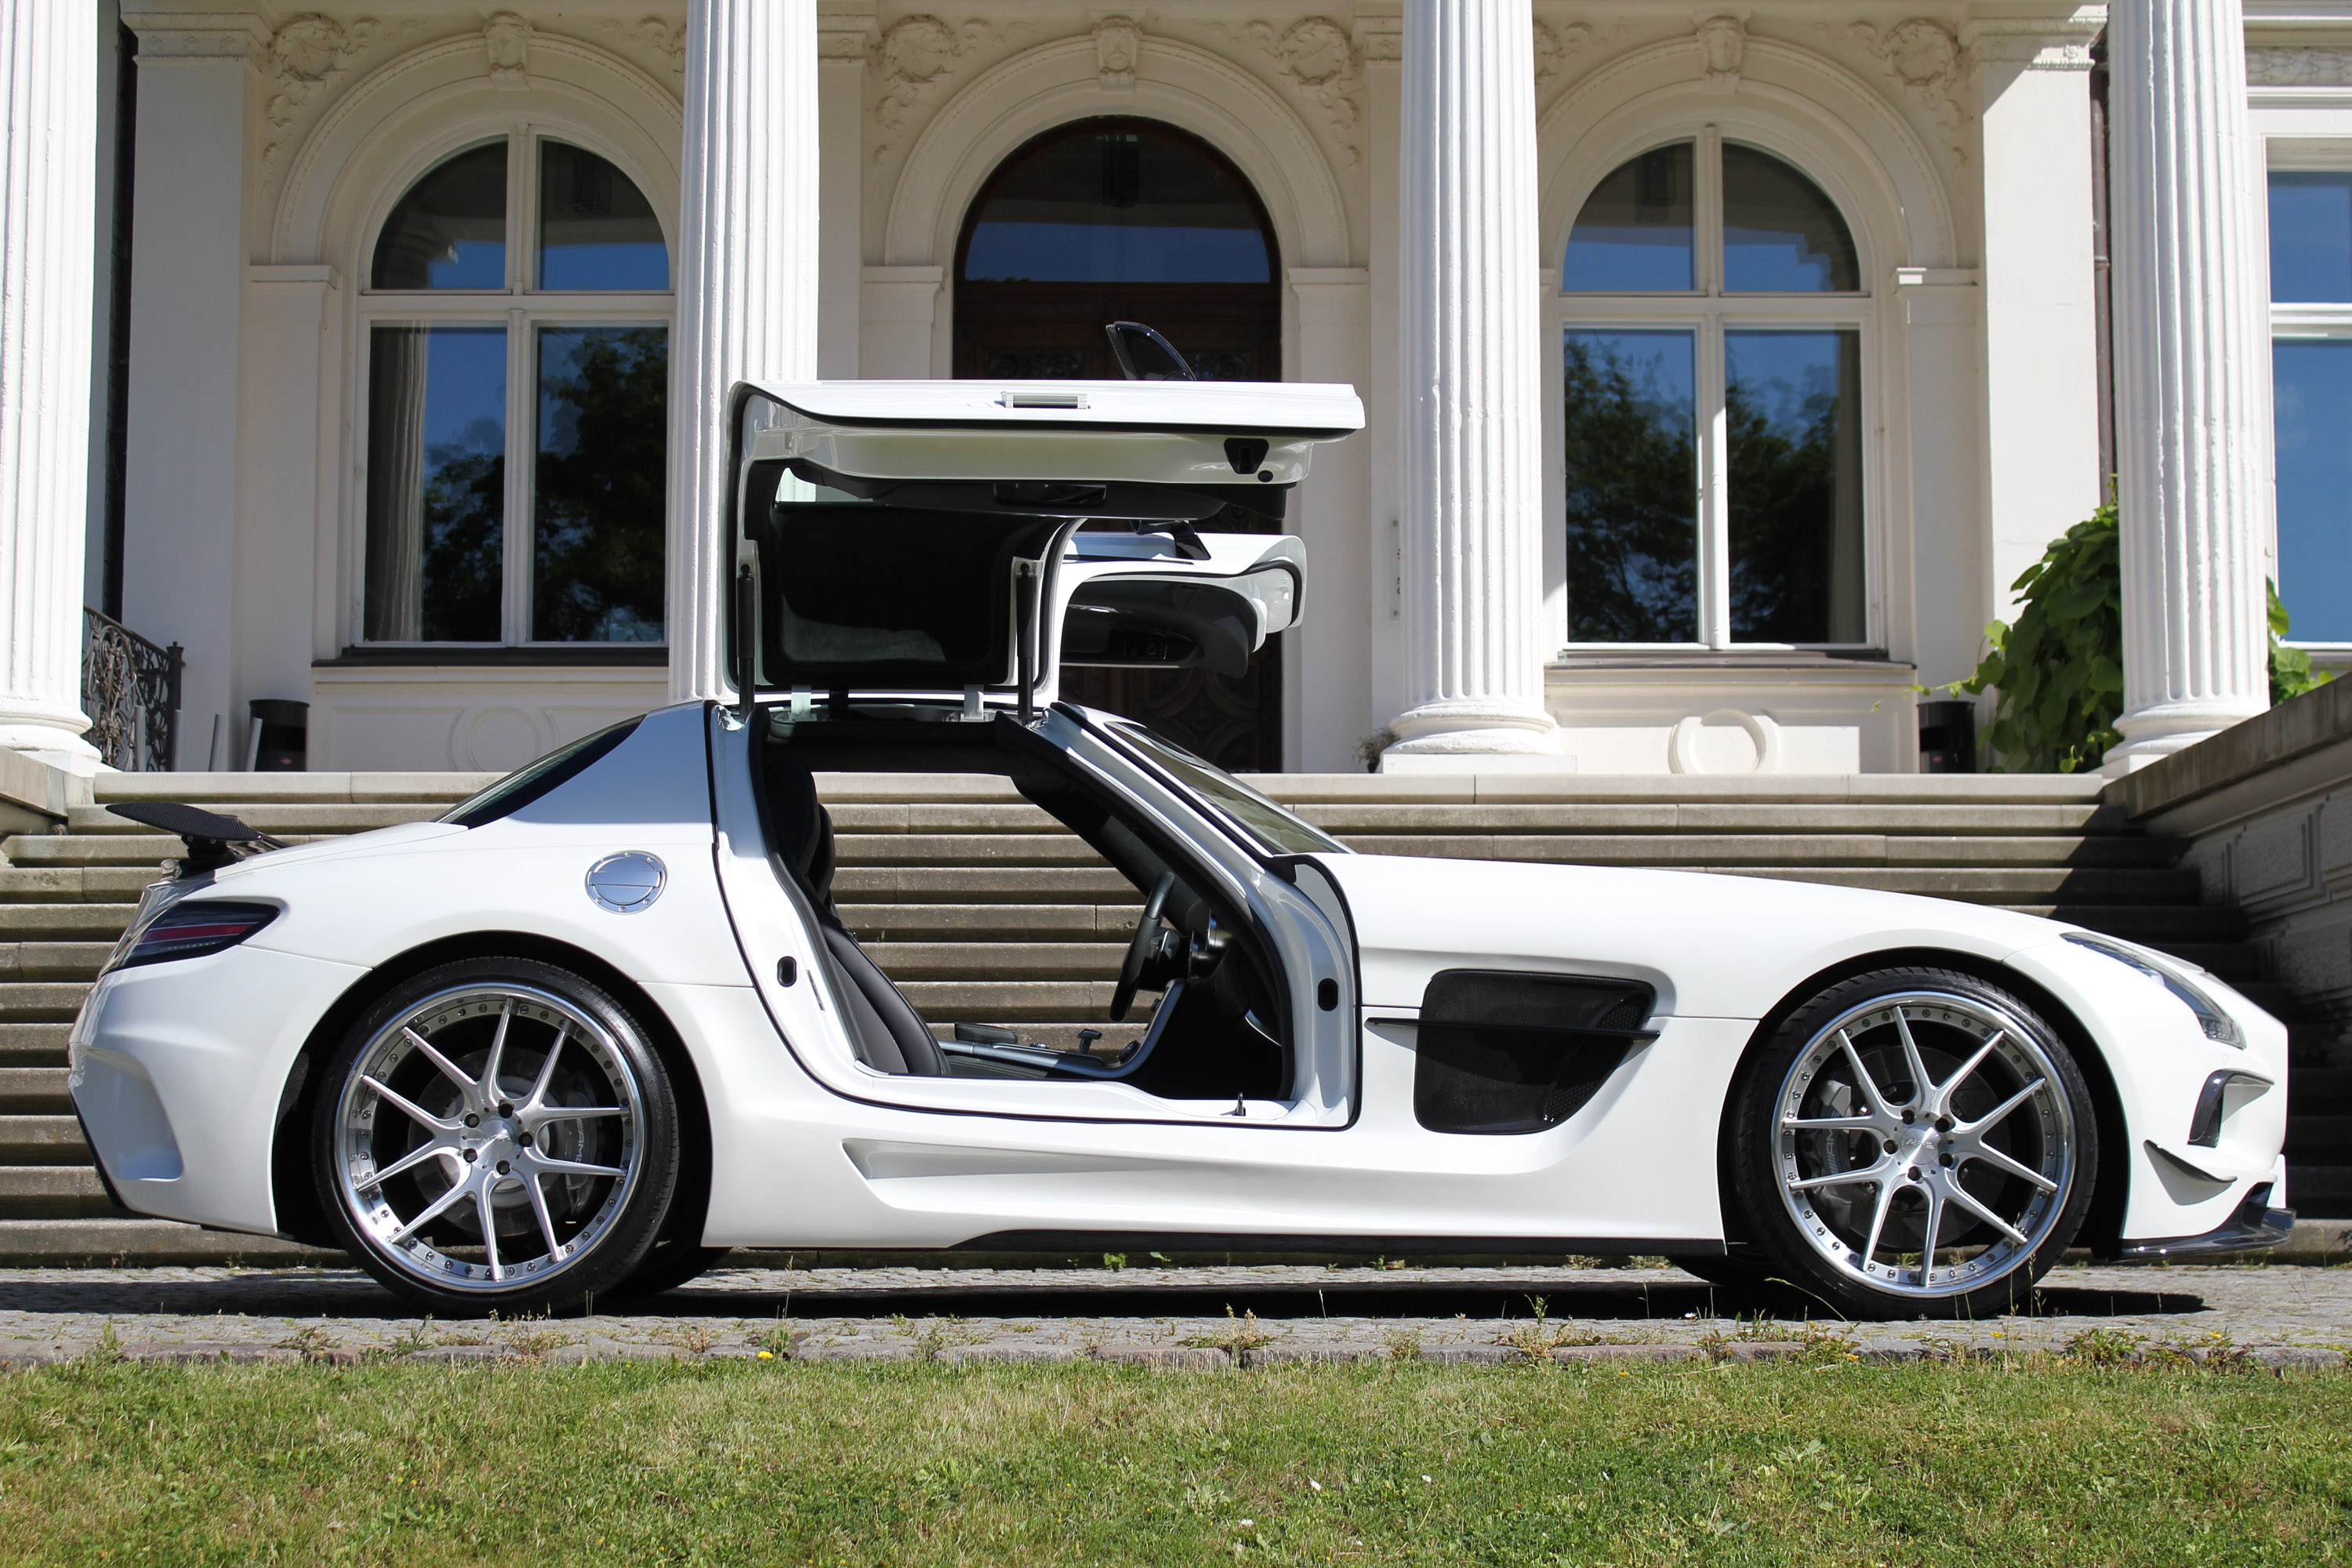 Mercedes Benz Sls Amg Review >> SGA Aerodynamics Mercedes-Benz SLS AMG Black Series